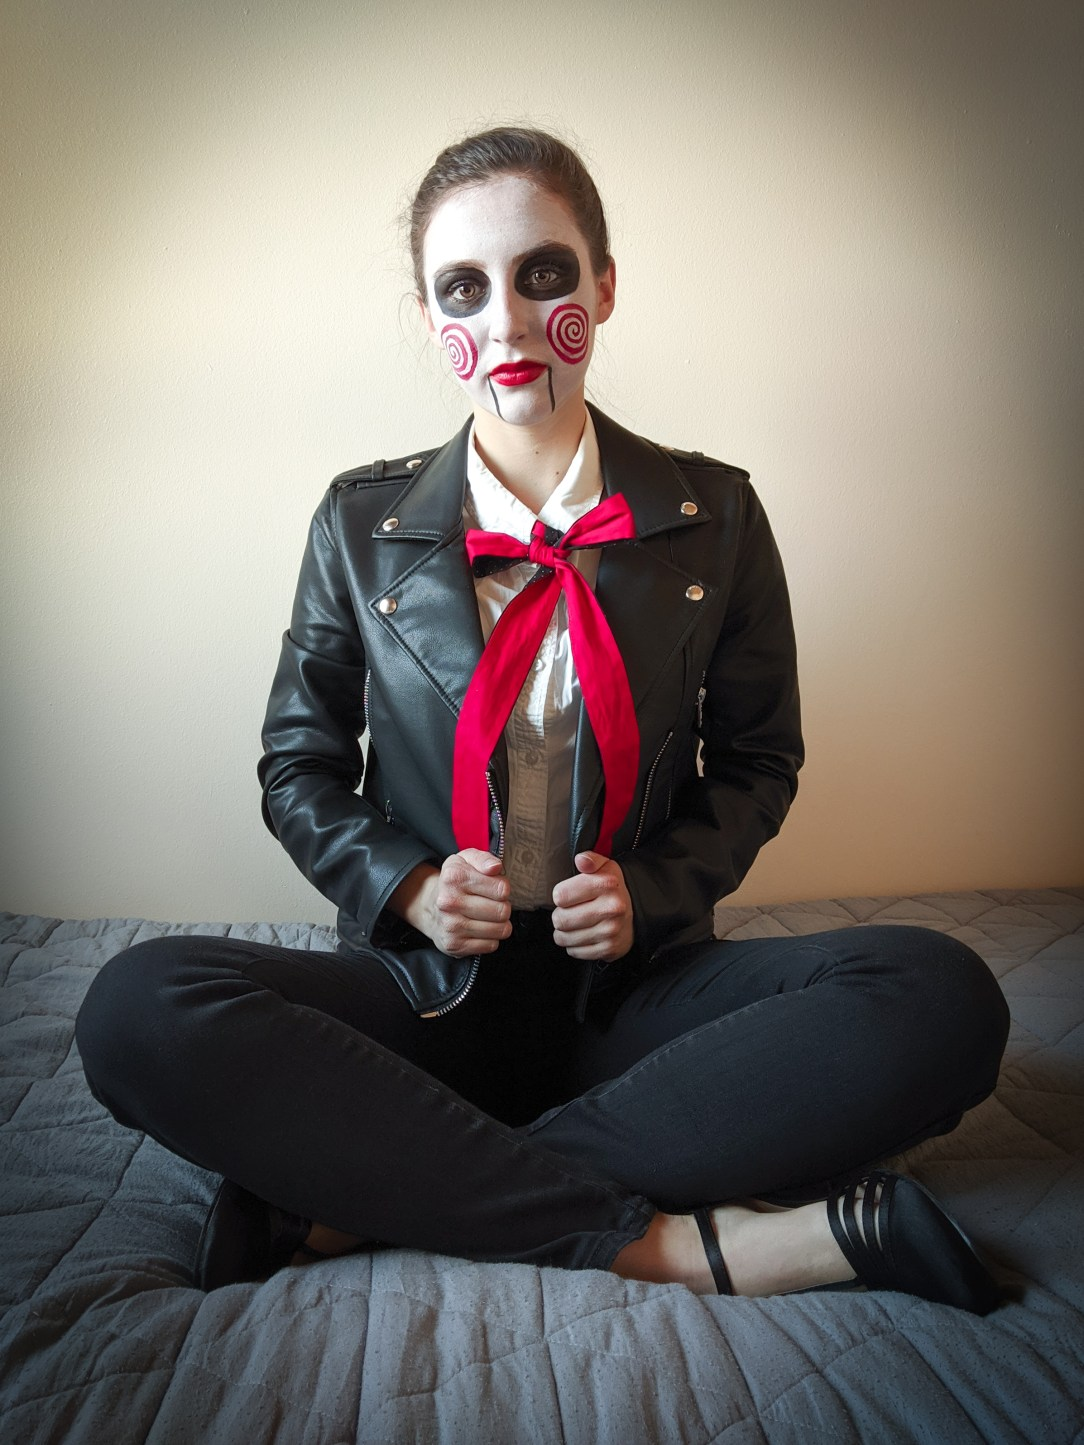 face paint, creepy Halloween, stylish costume